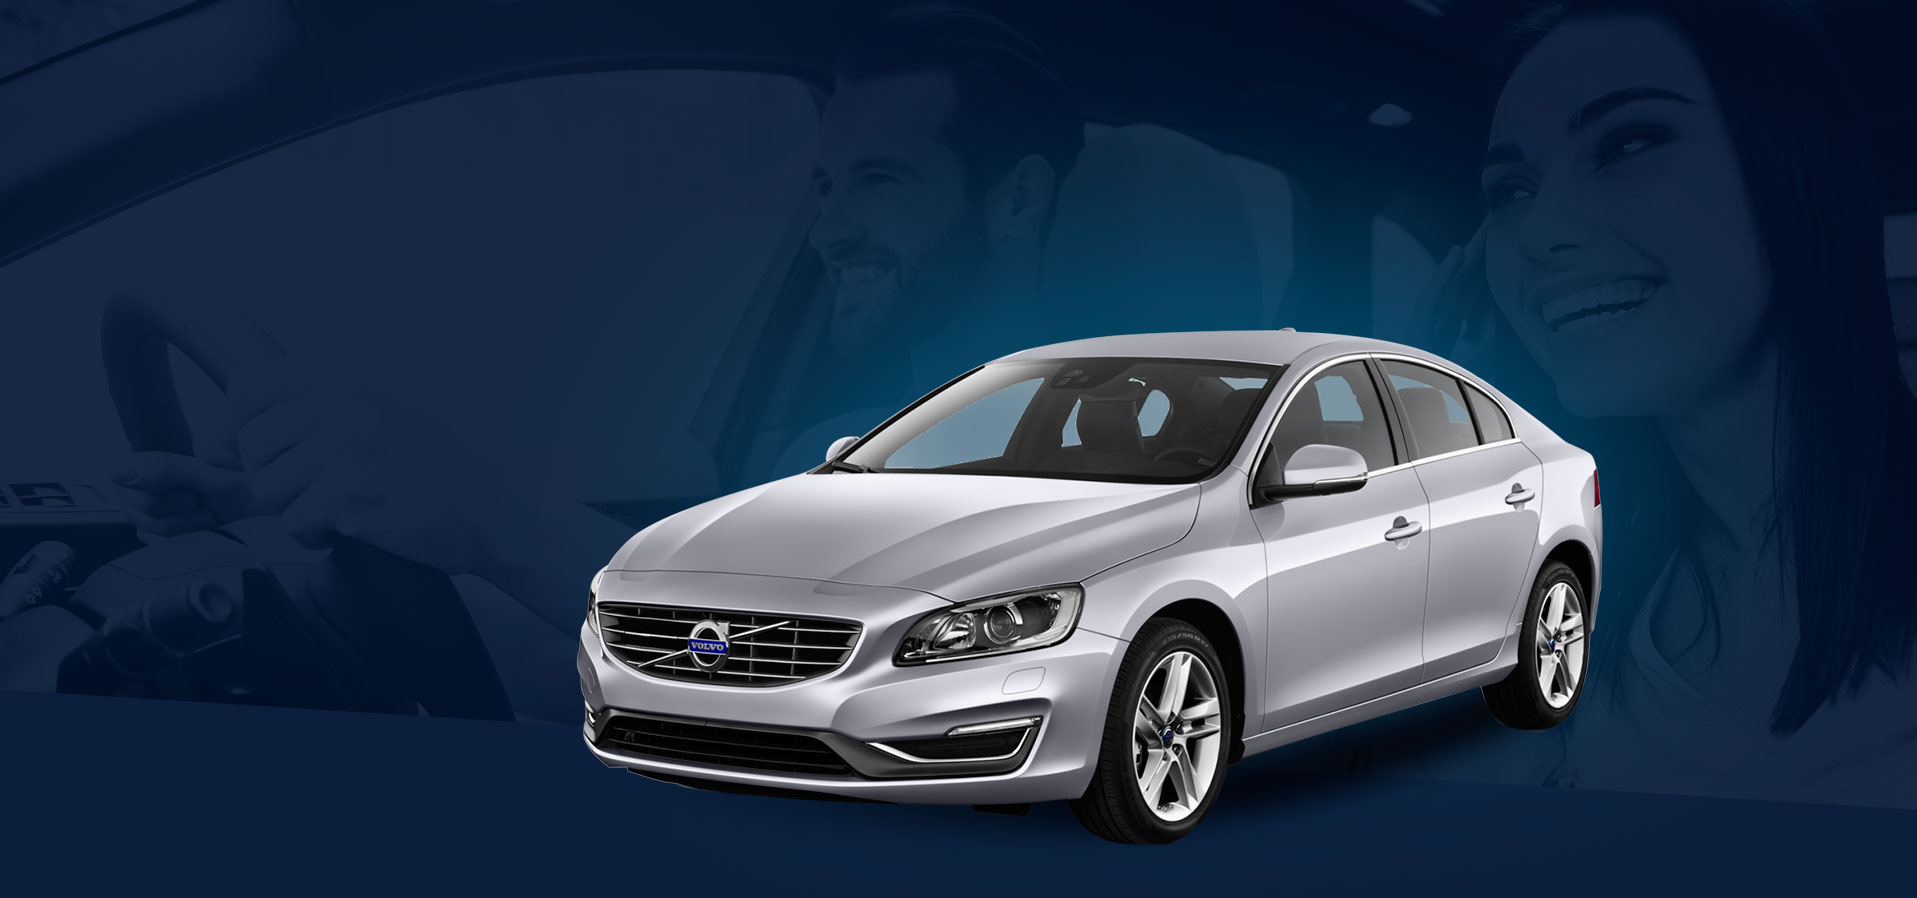 <div class='SlideTitulo wow  rollIn' data-wow-duration='1s' data-wow-delay='0.5s'> ESPECIALIZADA VOLVO </div>